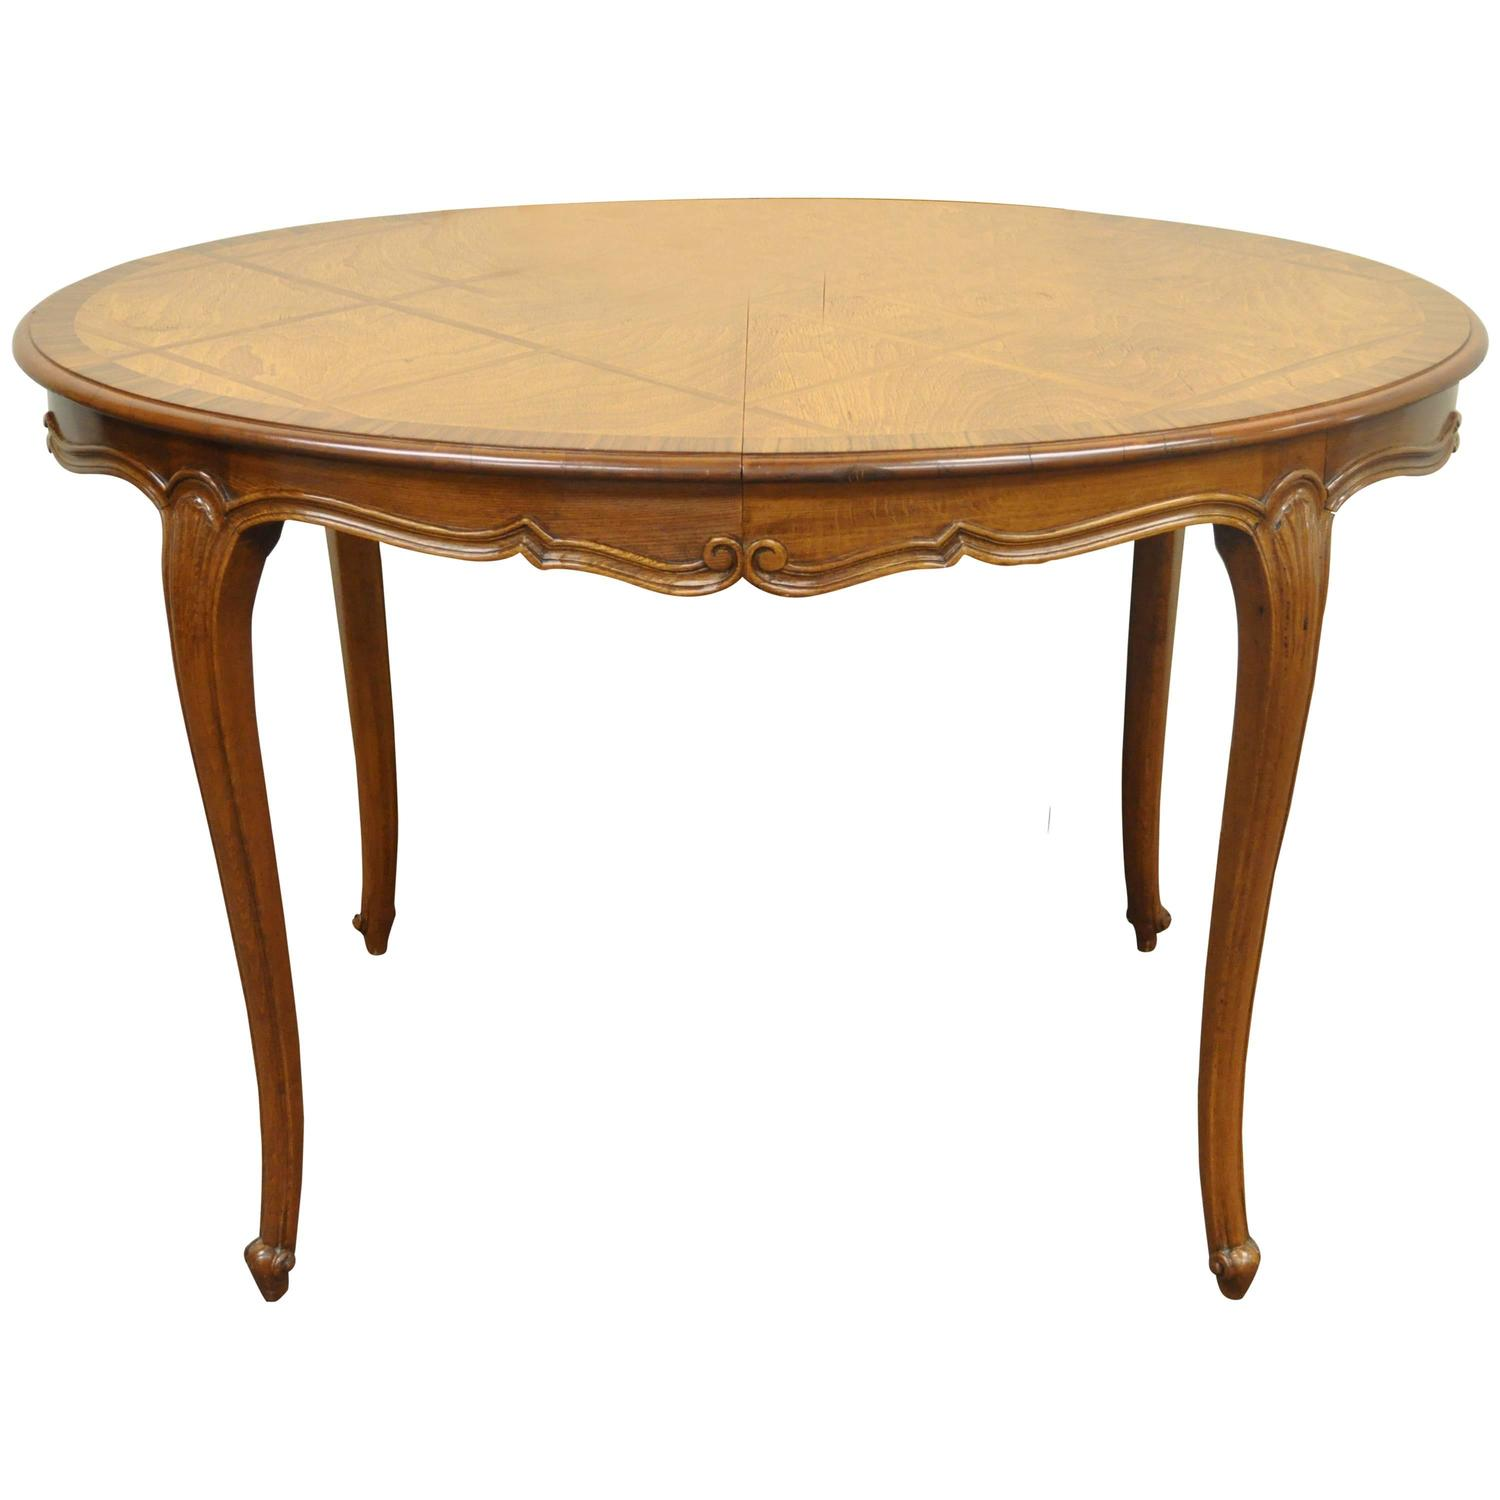 Petite Country French Or Louis Xv Style Parquetry Inlaid Custom Dining Table For Sale At 1stdibs